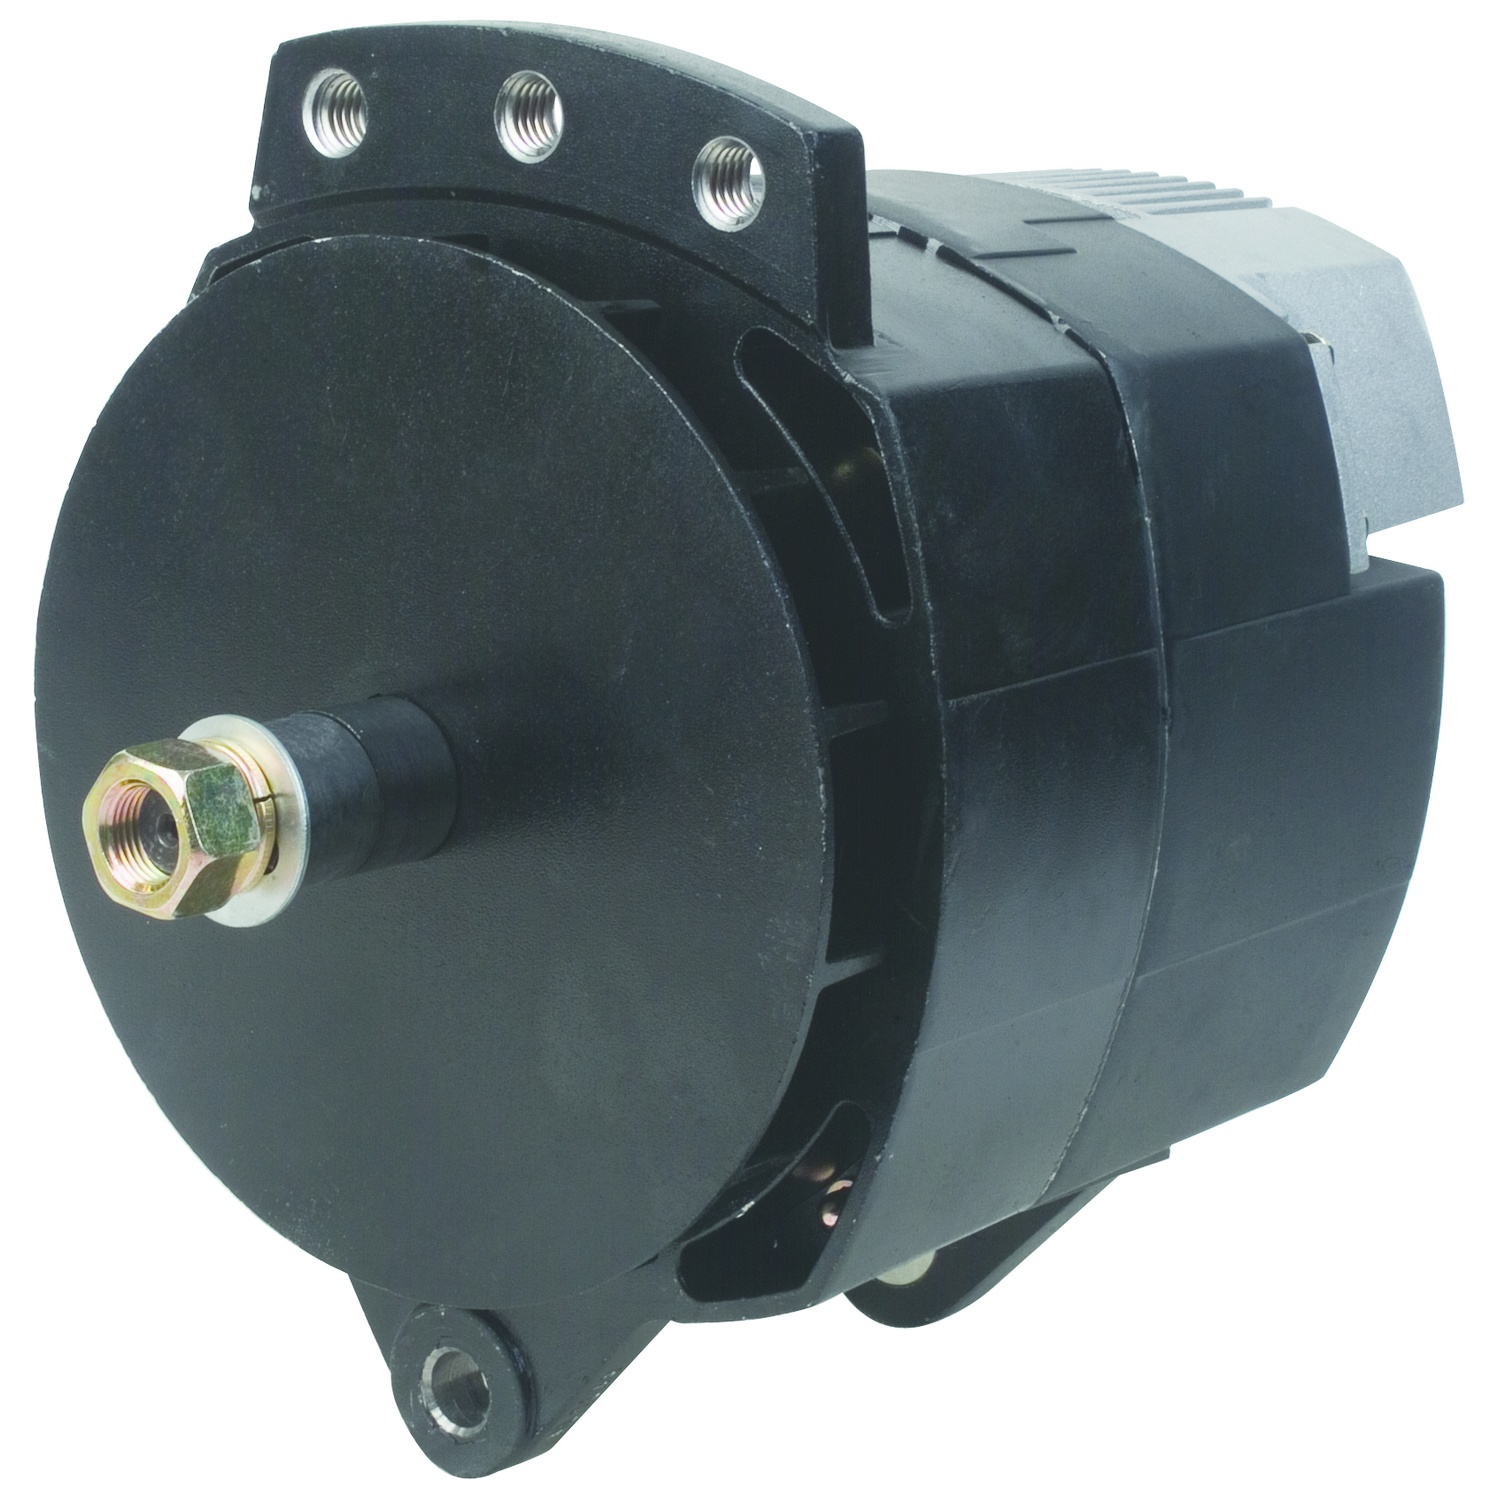 Alternator-Motorola PL 8SC 175A/24V